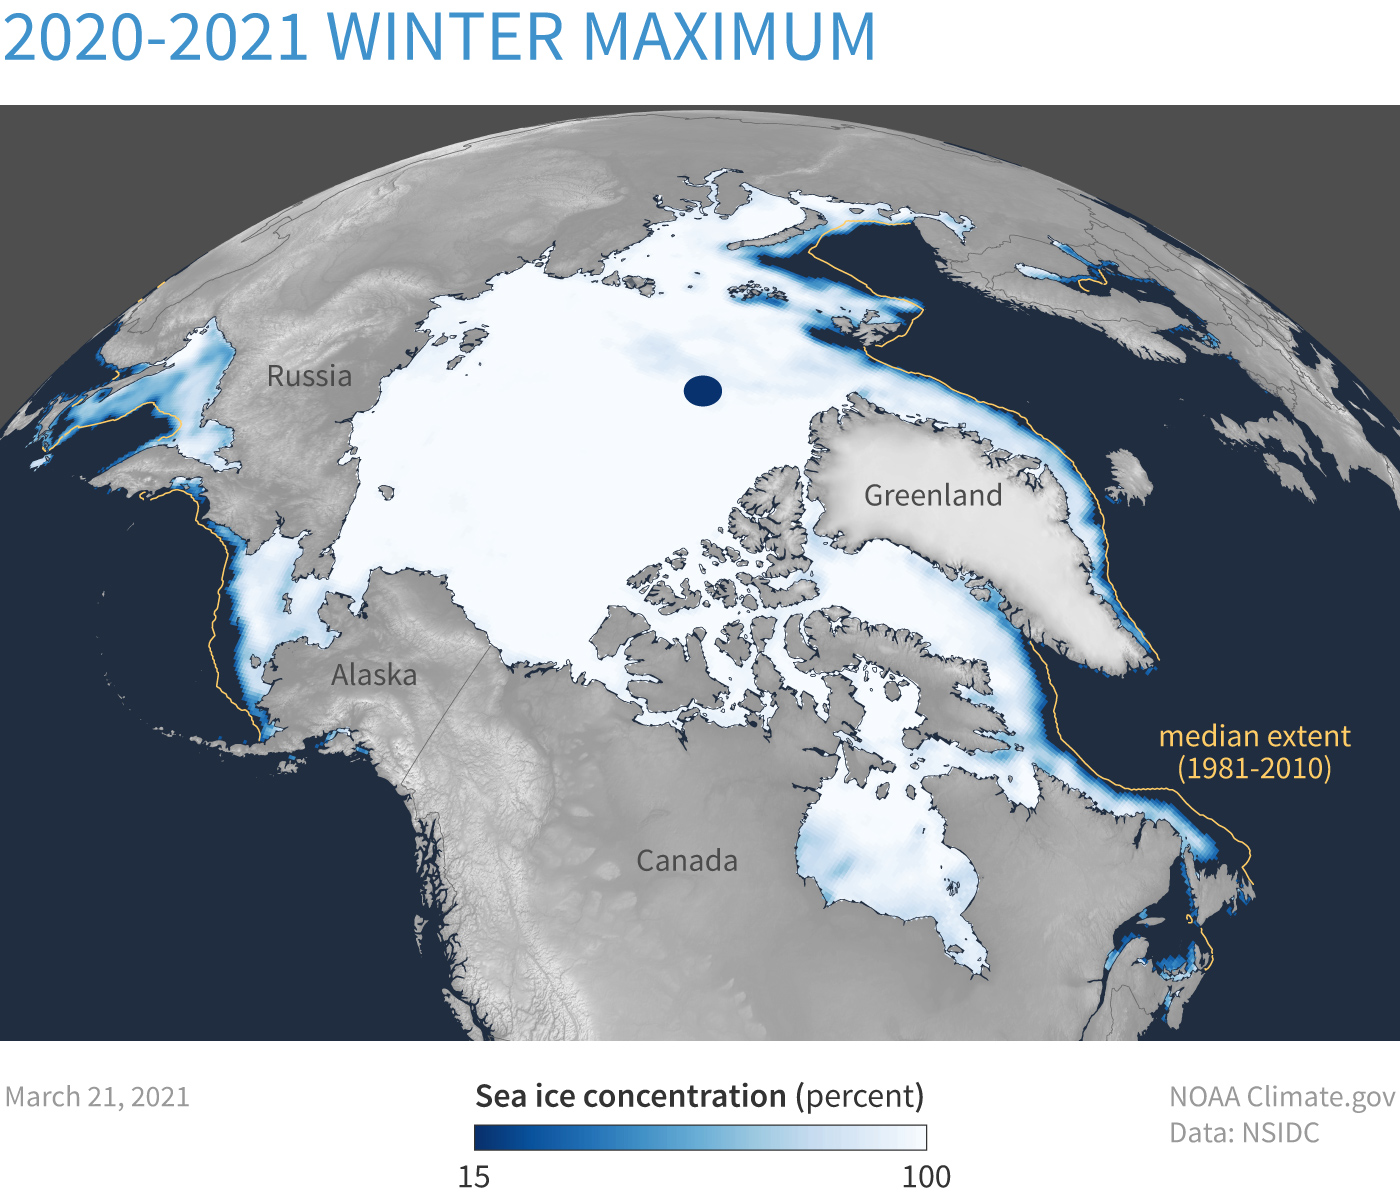 Spherical map of Arctic showing ice concentration on March 21, 2021